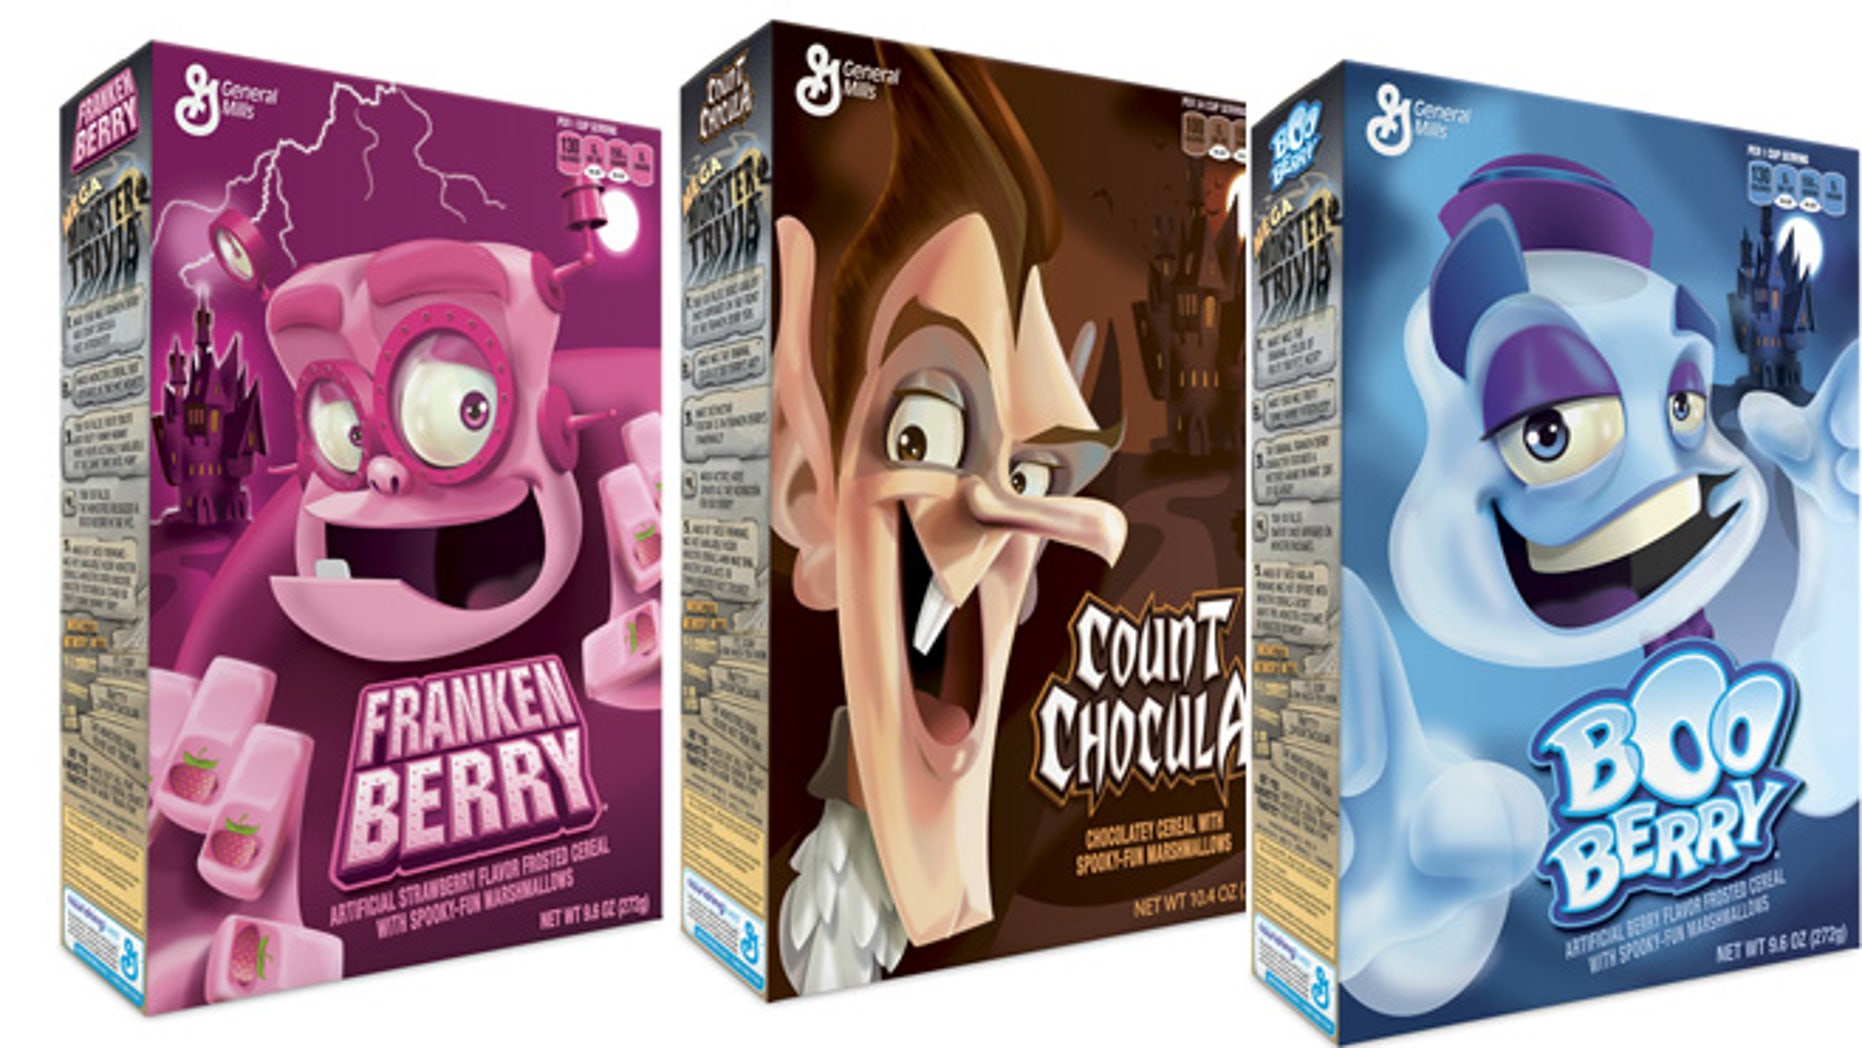 Franken Berry, Count Chocula and Boo Berry cereals